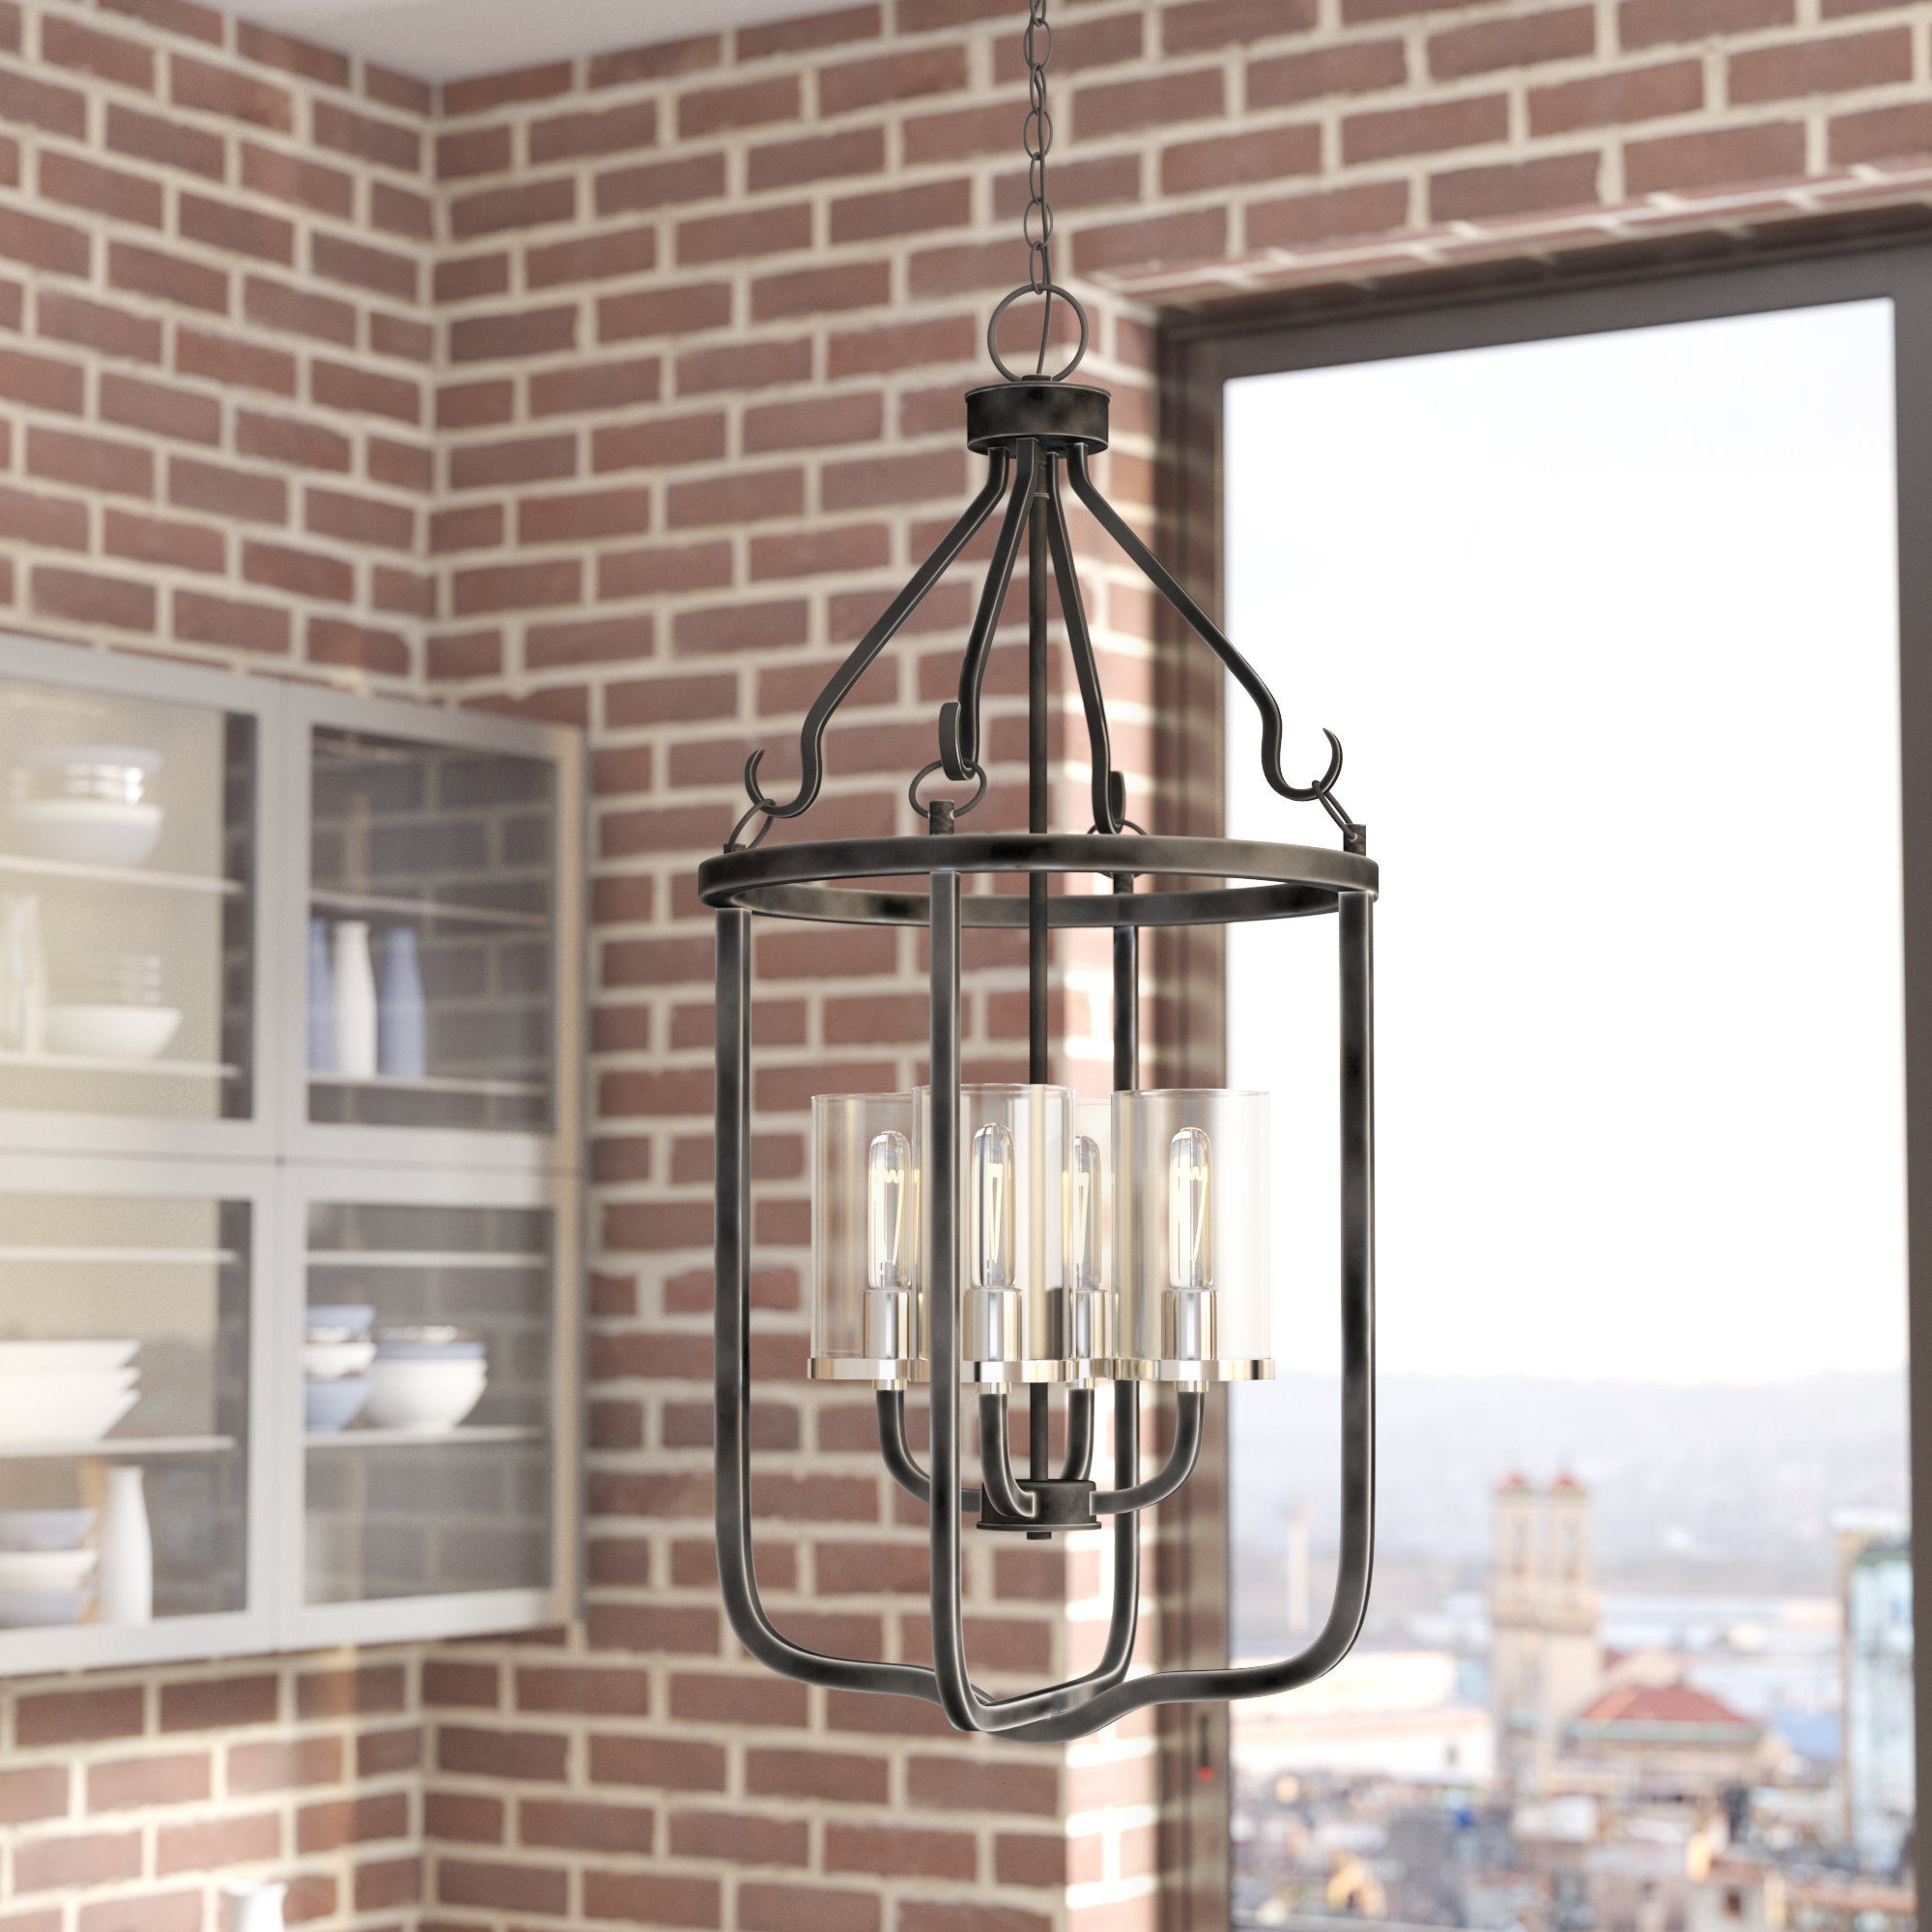 Kylee 4 Light Lantern Geometric Pendant Regarding Preferred Taya 4 Light Lantern Square Pendants (View 6 of 20)